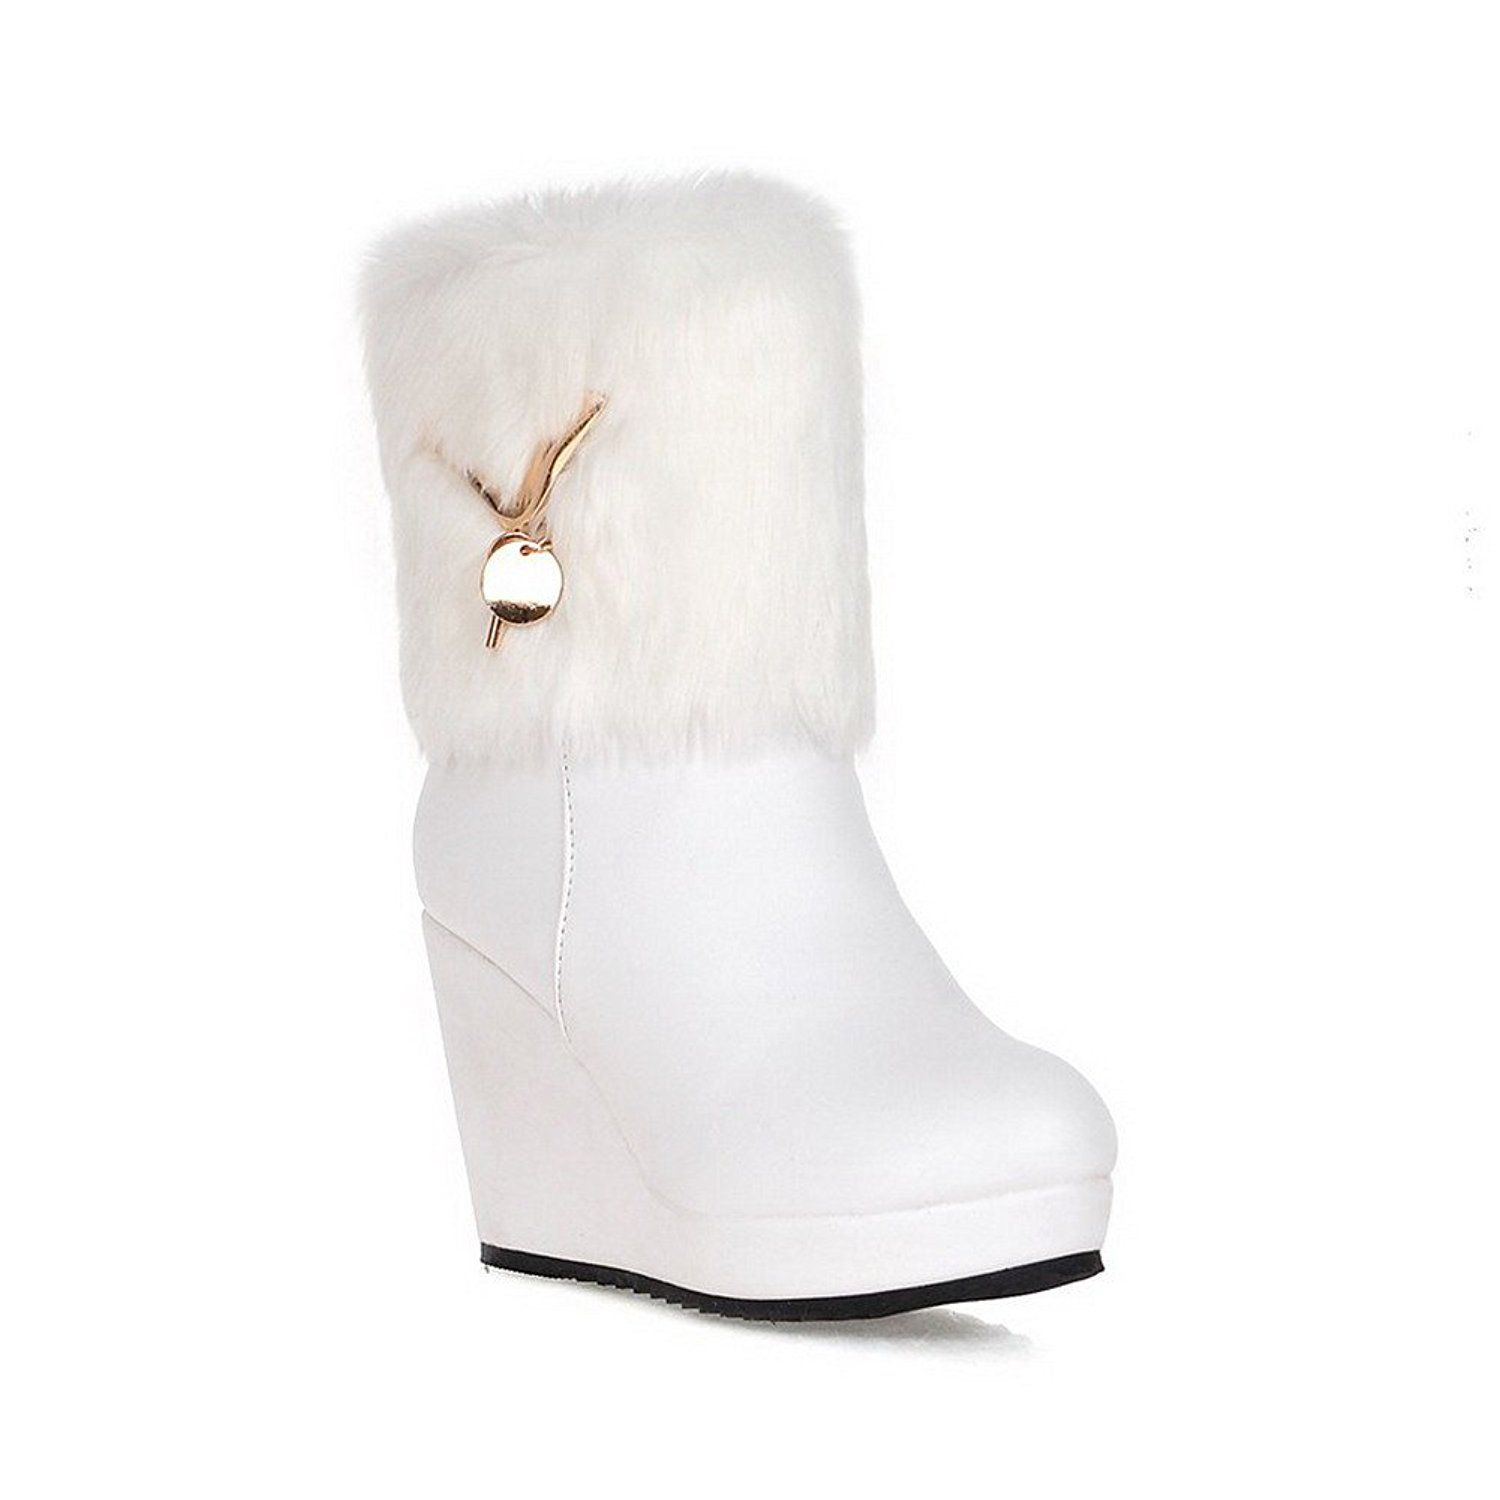 Women's Blend Materials Solid Closed-Toe Boots With Thread and Rubber Soles